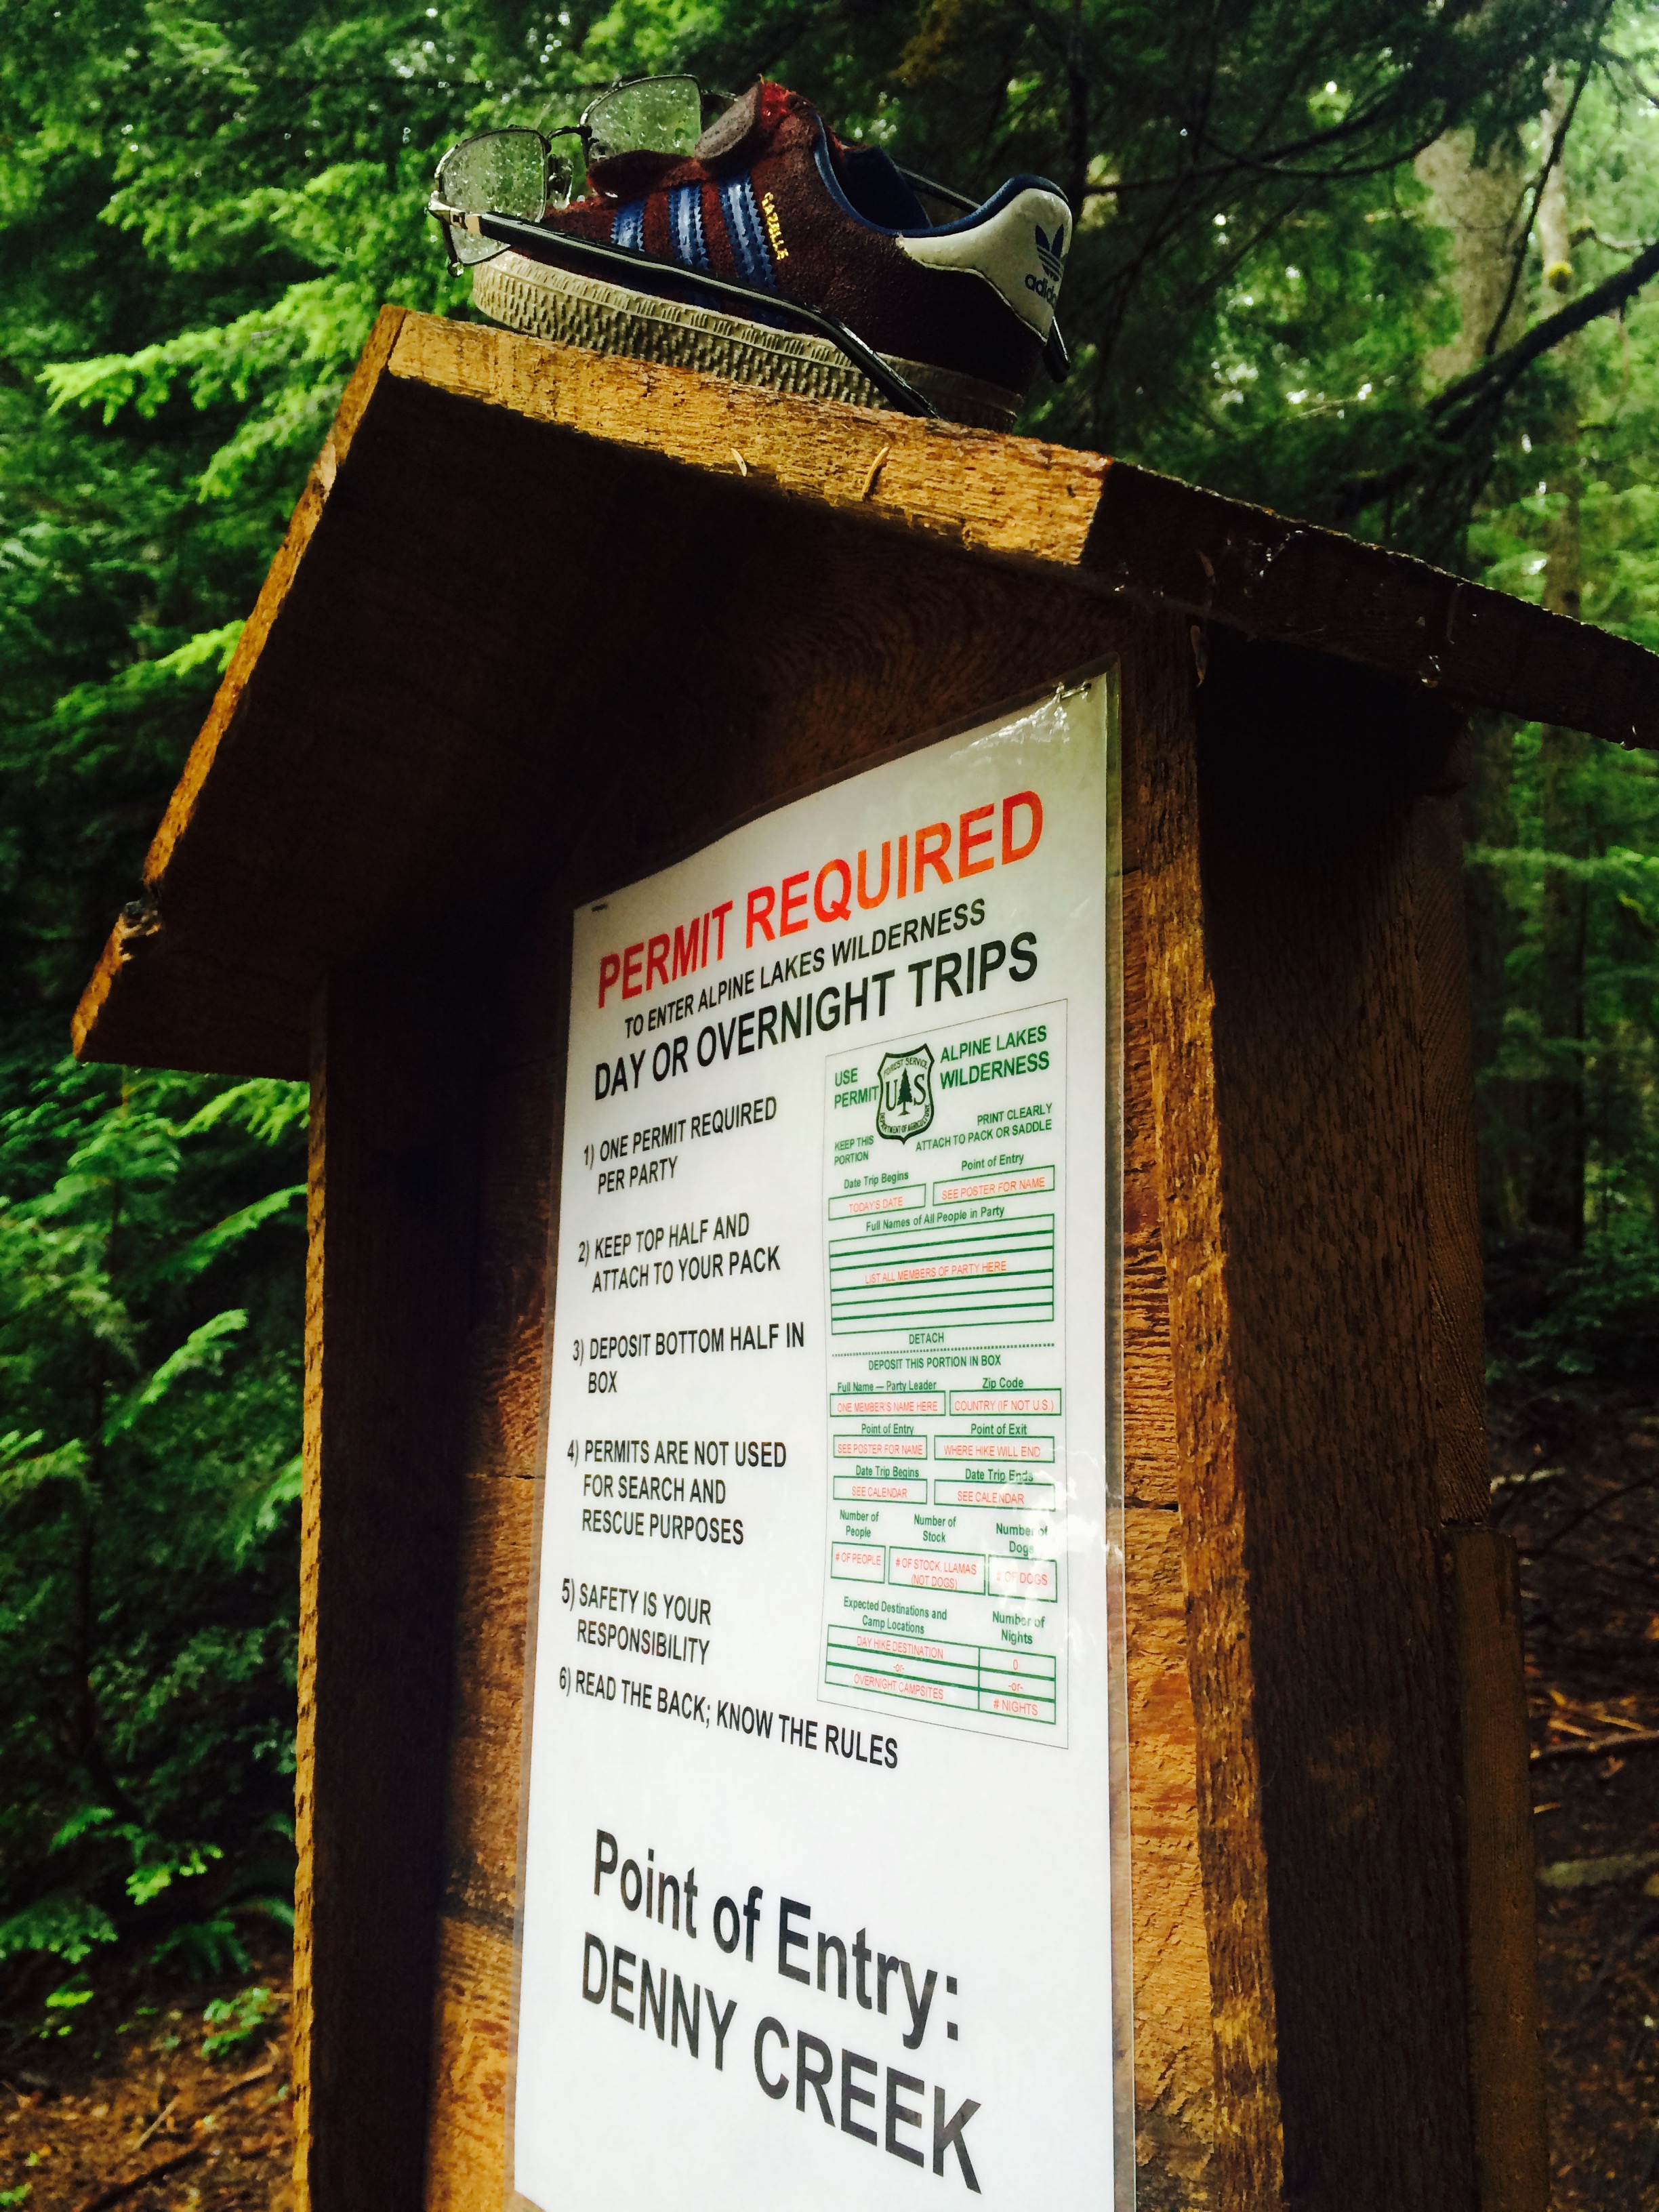 Denny Creek Point of Entry Sign Permit Information